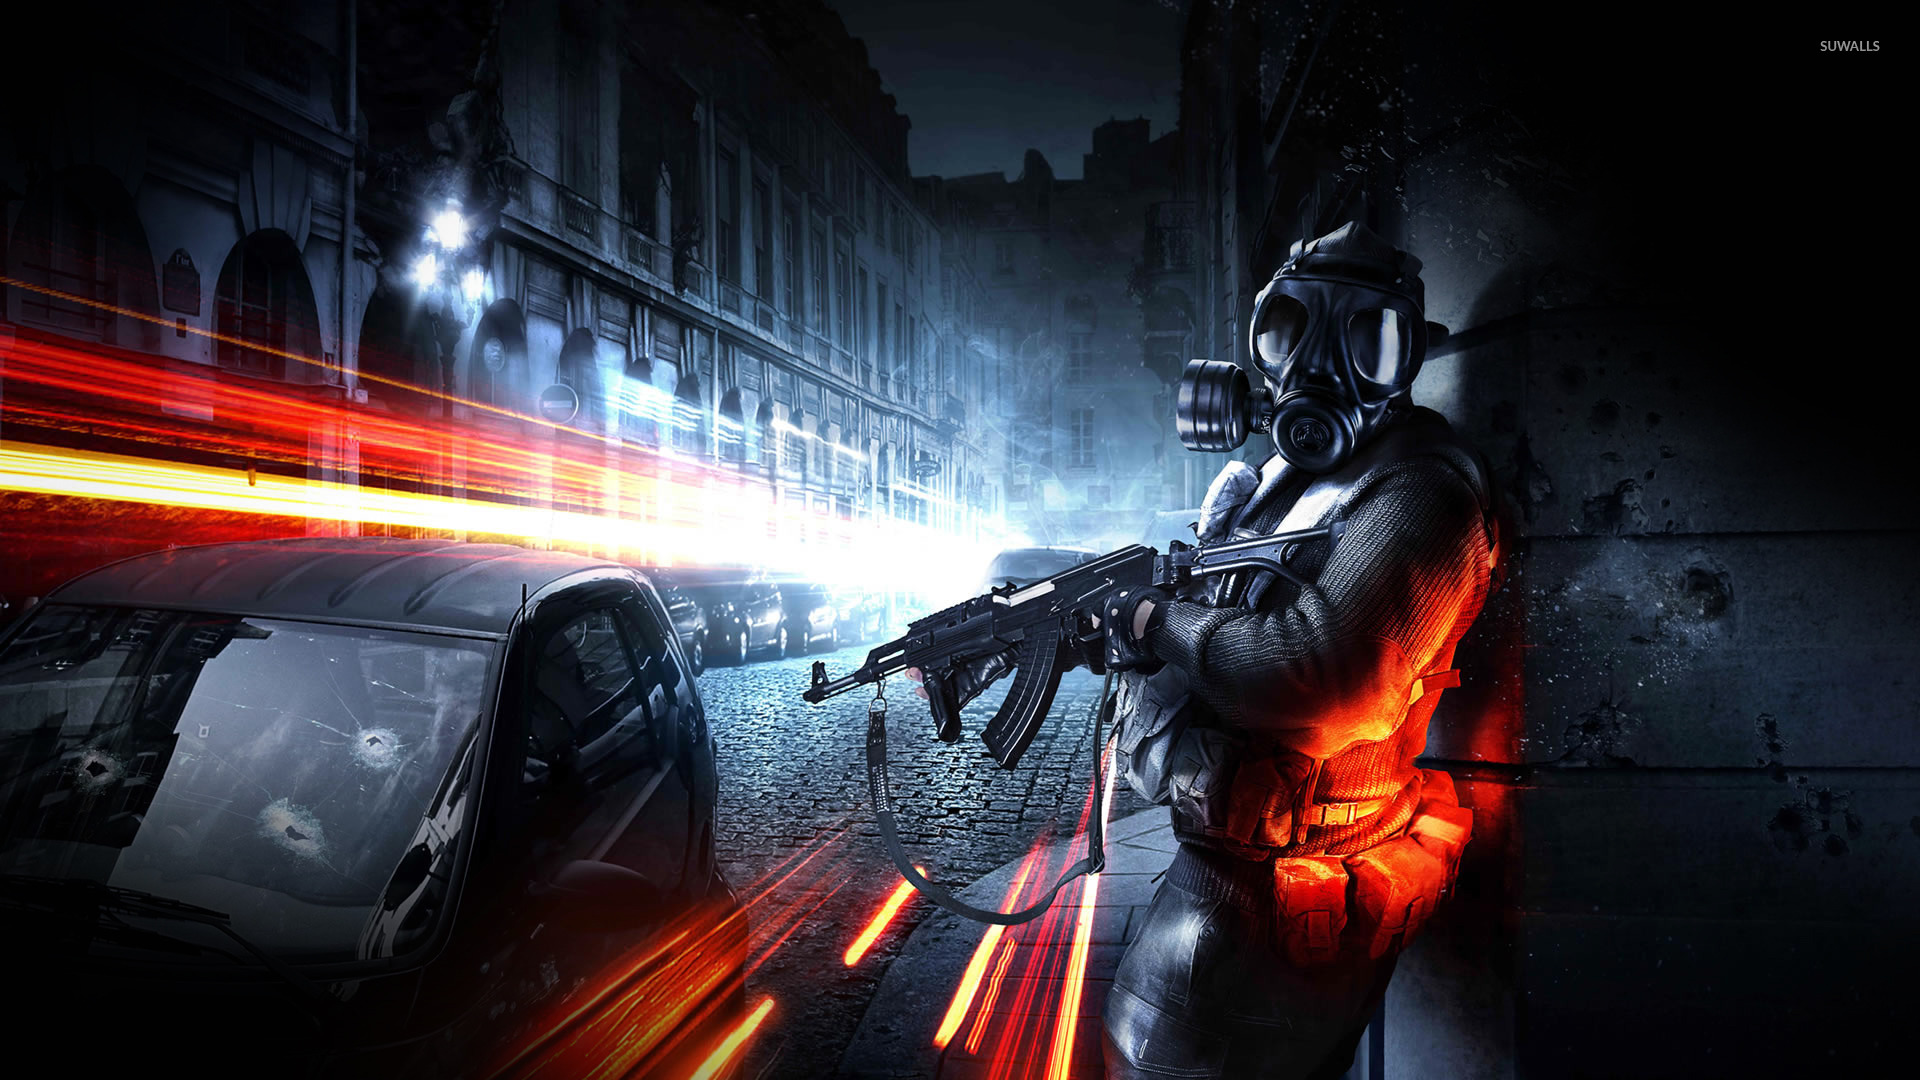 battlefield 3 [17] wallpaper - game wallpapers - #18828